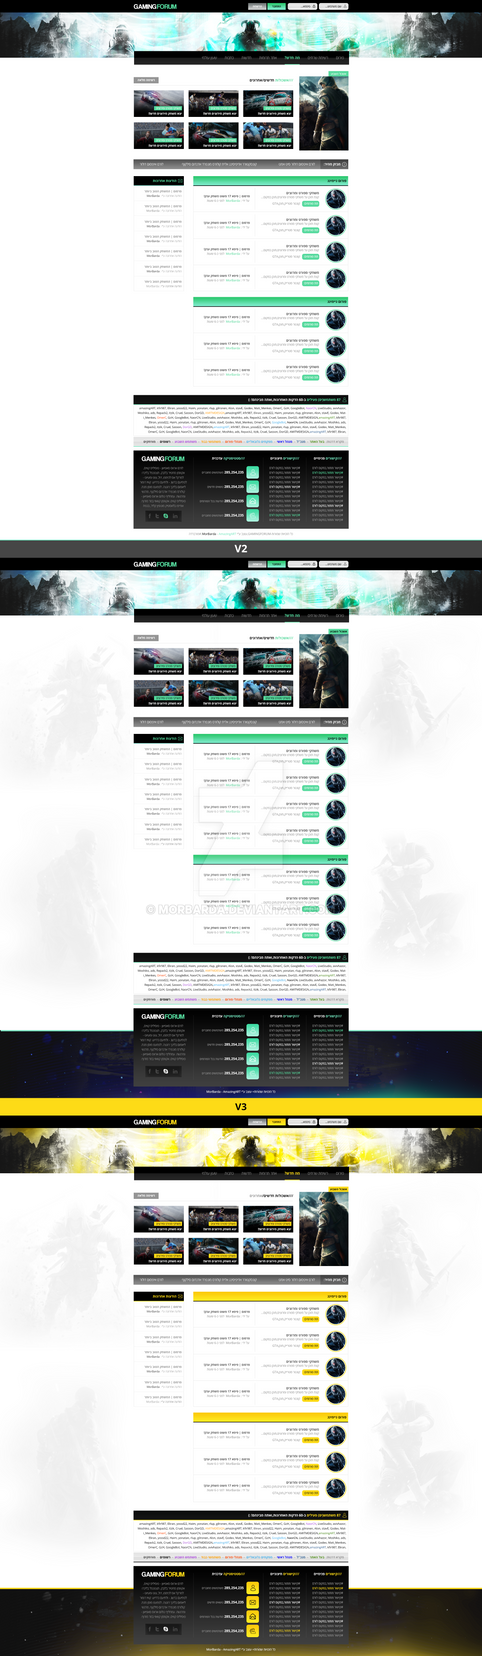 Website Design - Forum Gaming by MorBarda